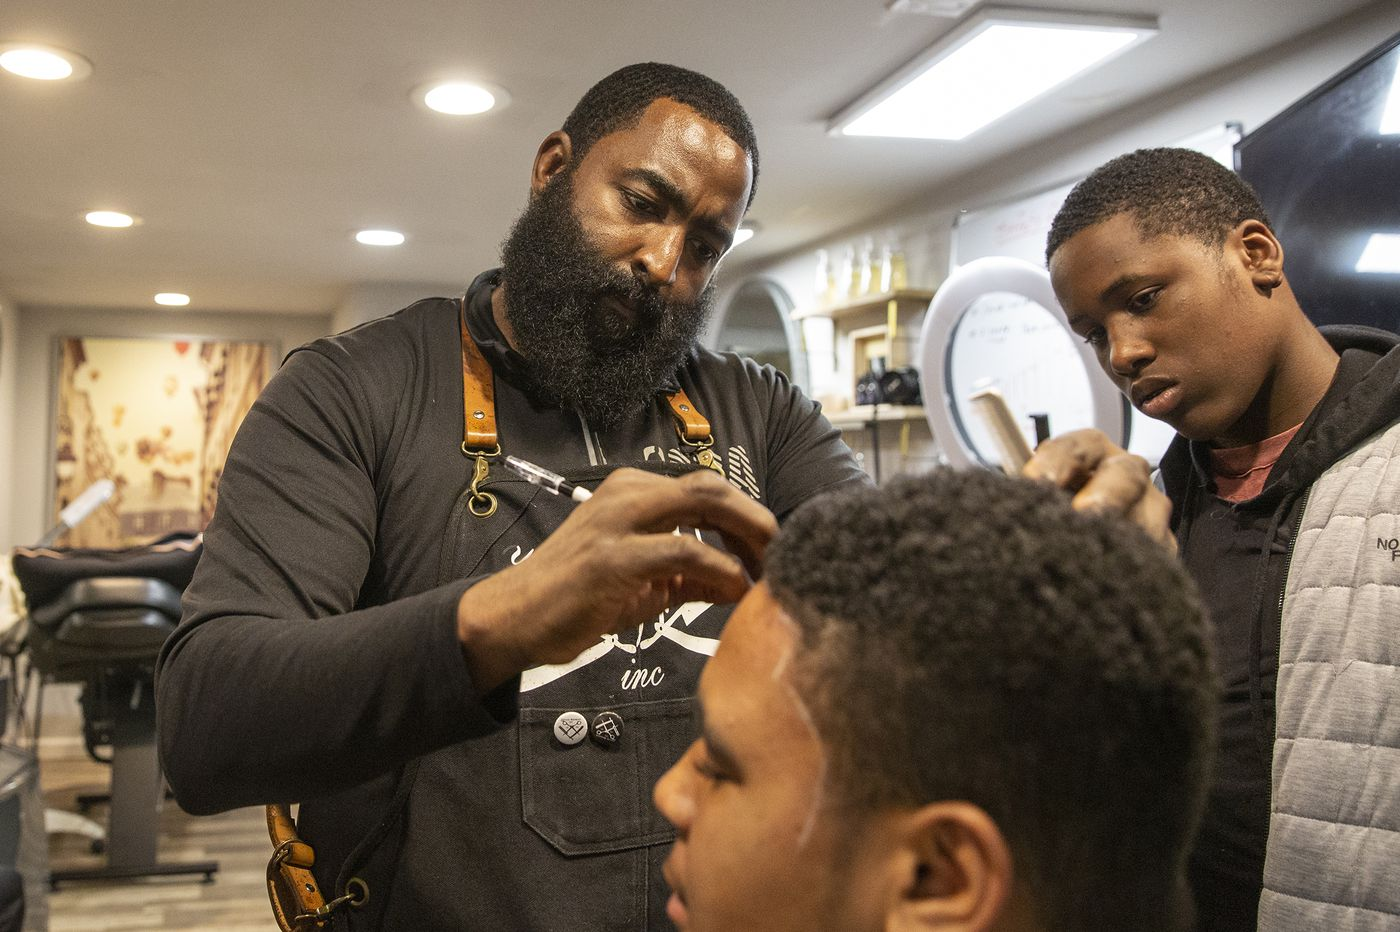 North Philly's Jr. Barber Academy teaches kids the basics of barbering and entrepreneurship